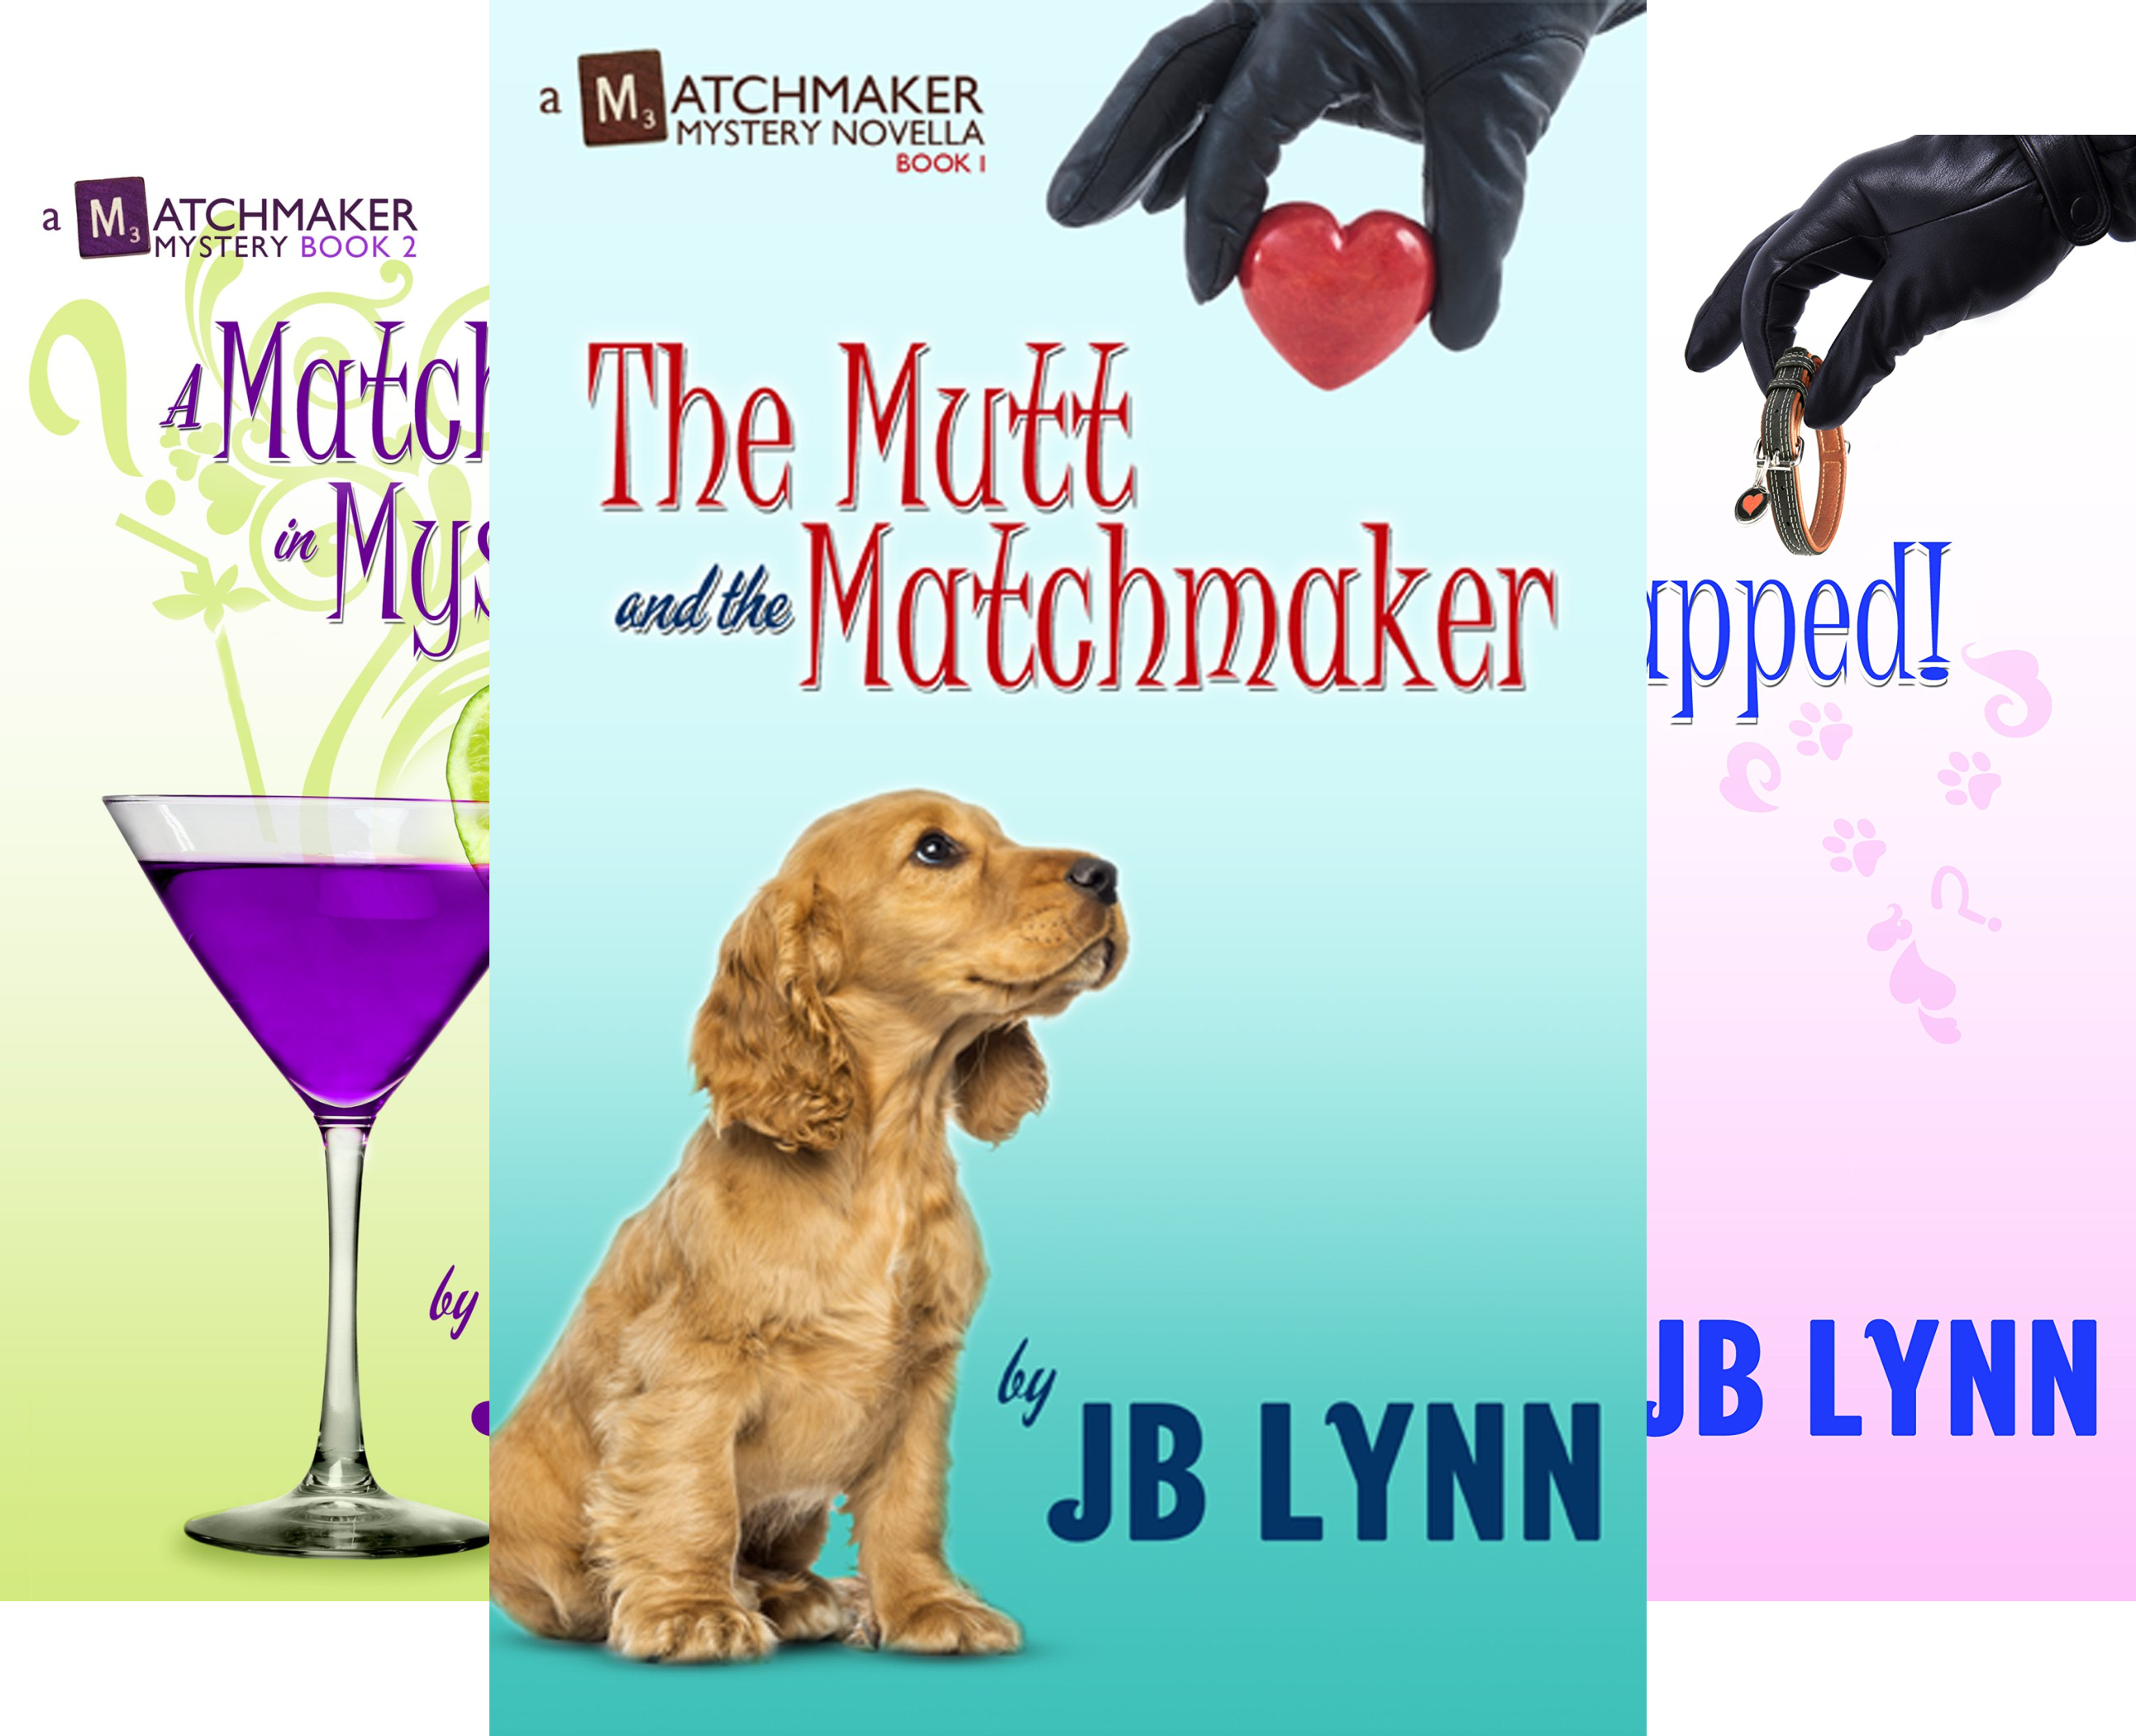 A Matchmaker Mystery (3 Book Series)